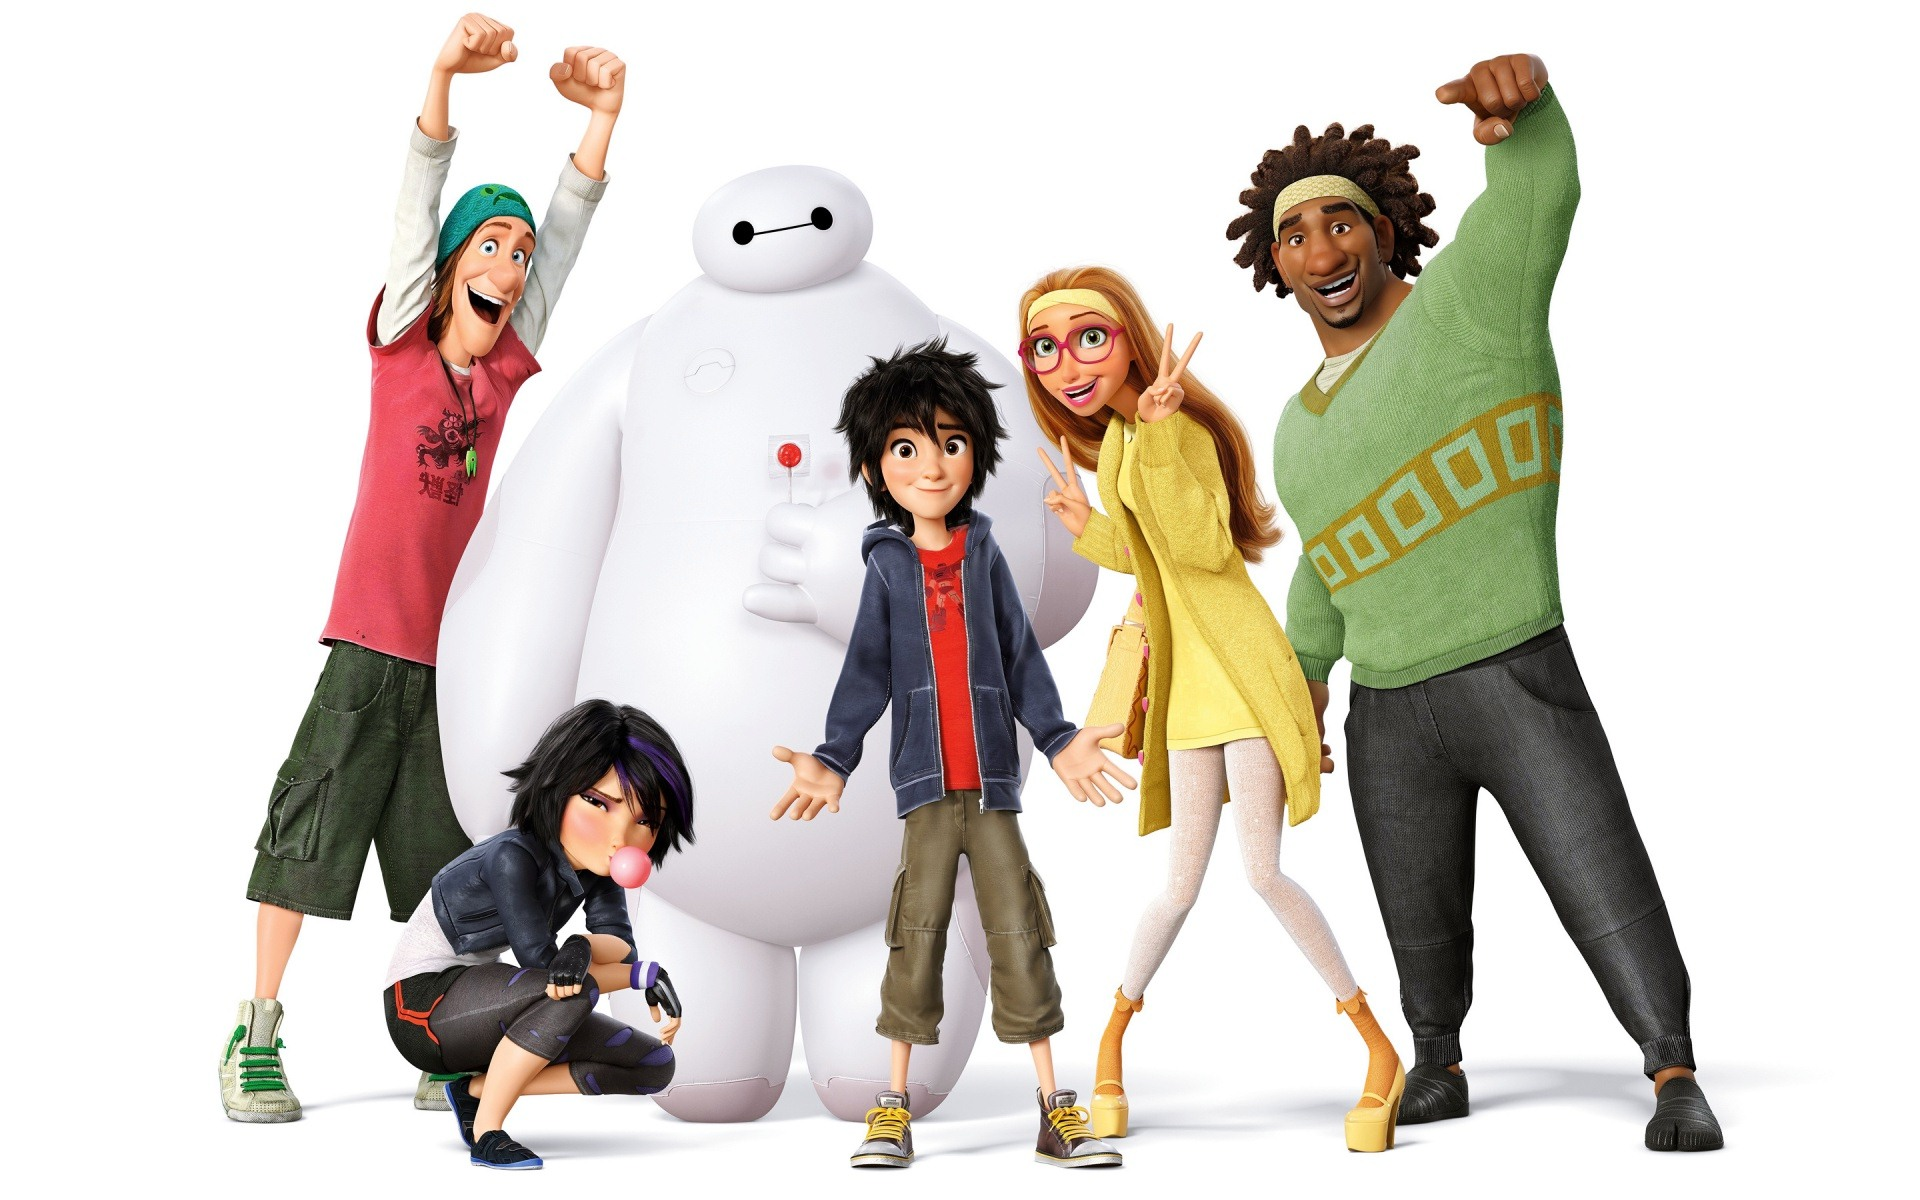 Big Hero 6 Movie Quotes on family guy desktop themes